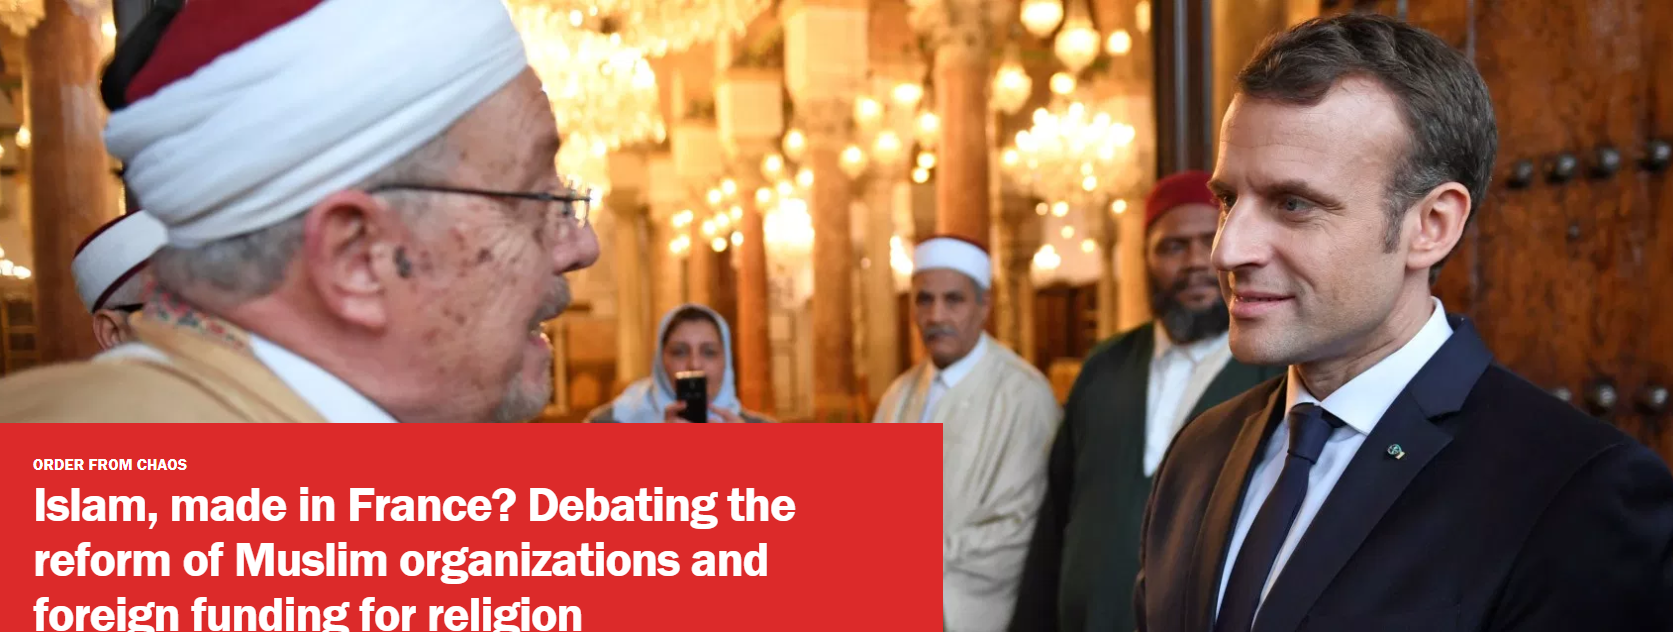 Islam, made in France? Debating the reform of Muslim organizations and foreign funding for religion